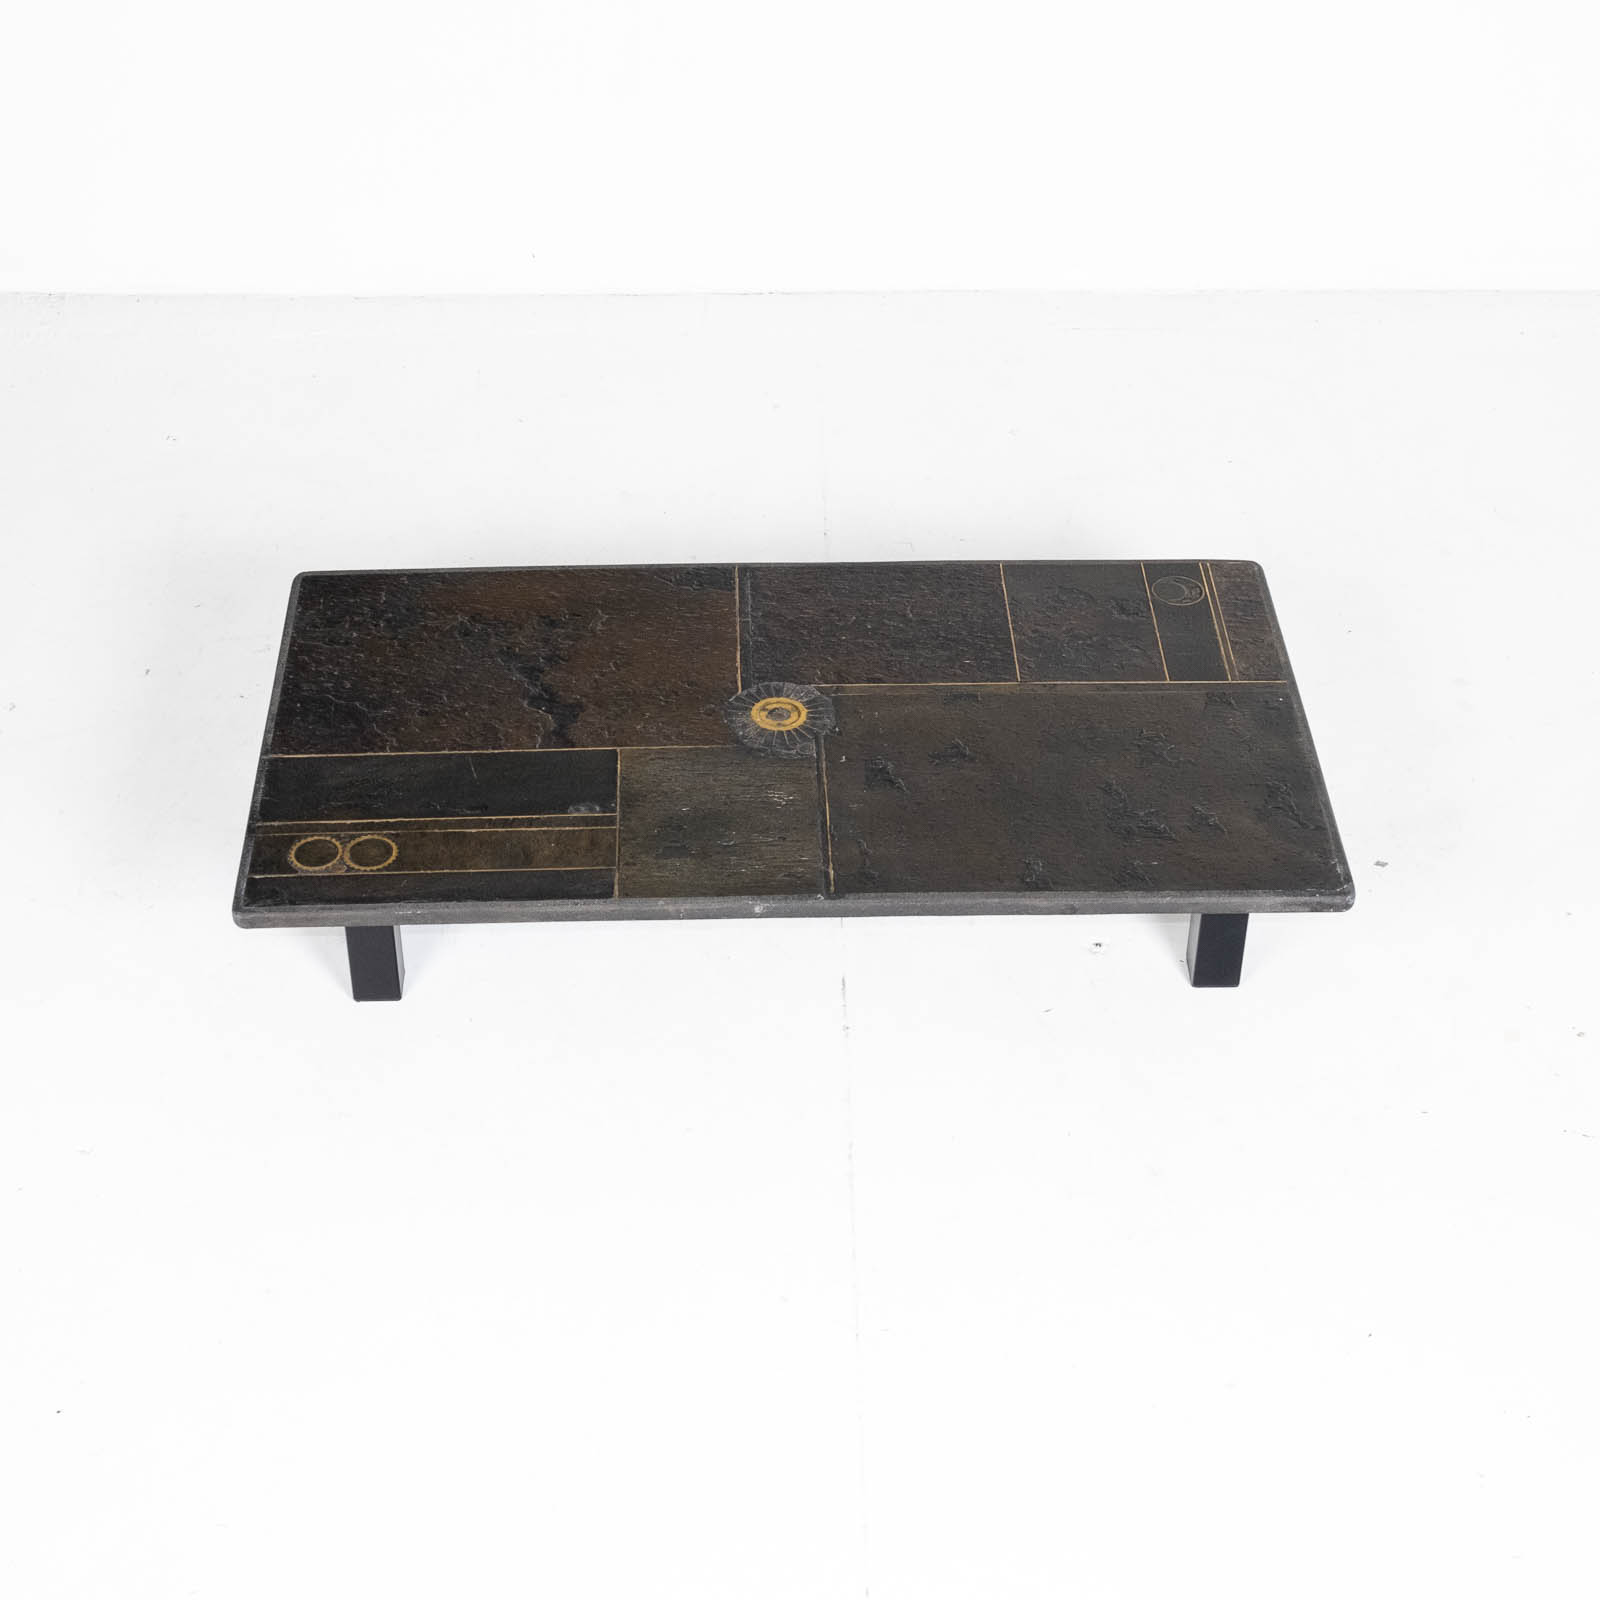 Rectangular Coffee Table By Paul Kingma In Stone, Slate And Brass, 1970s, The Netherlands 00007